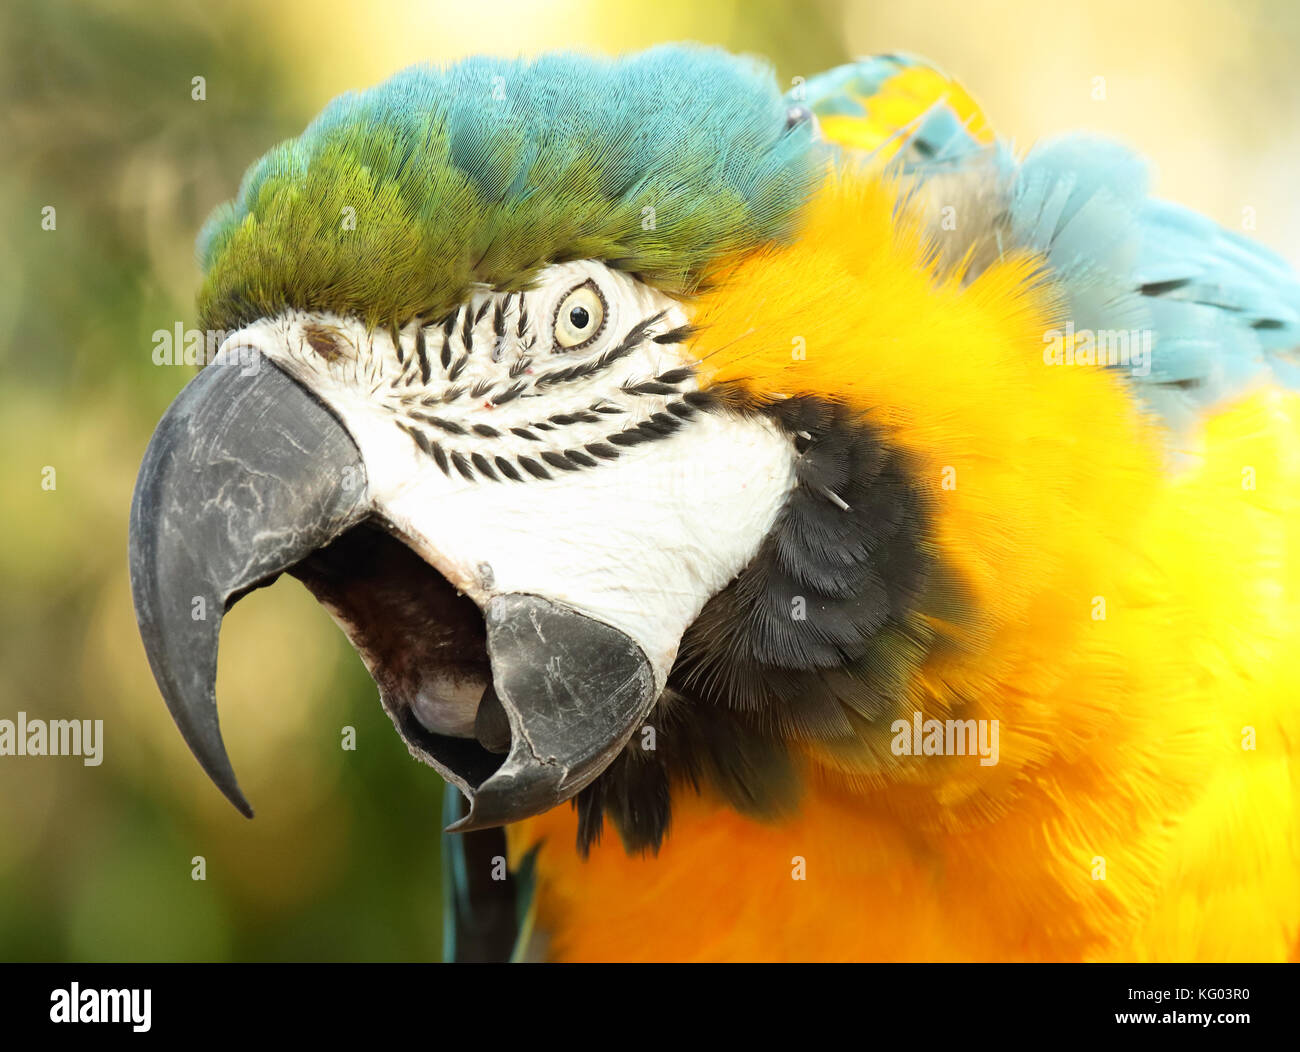 A Macaw calling loudly. - Stock Image